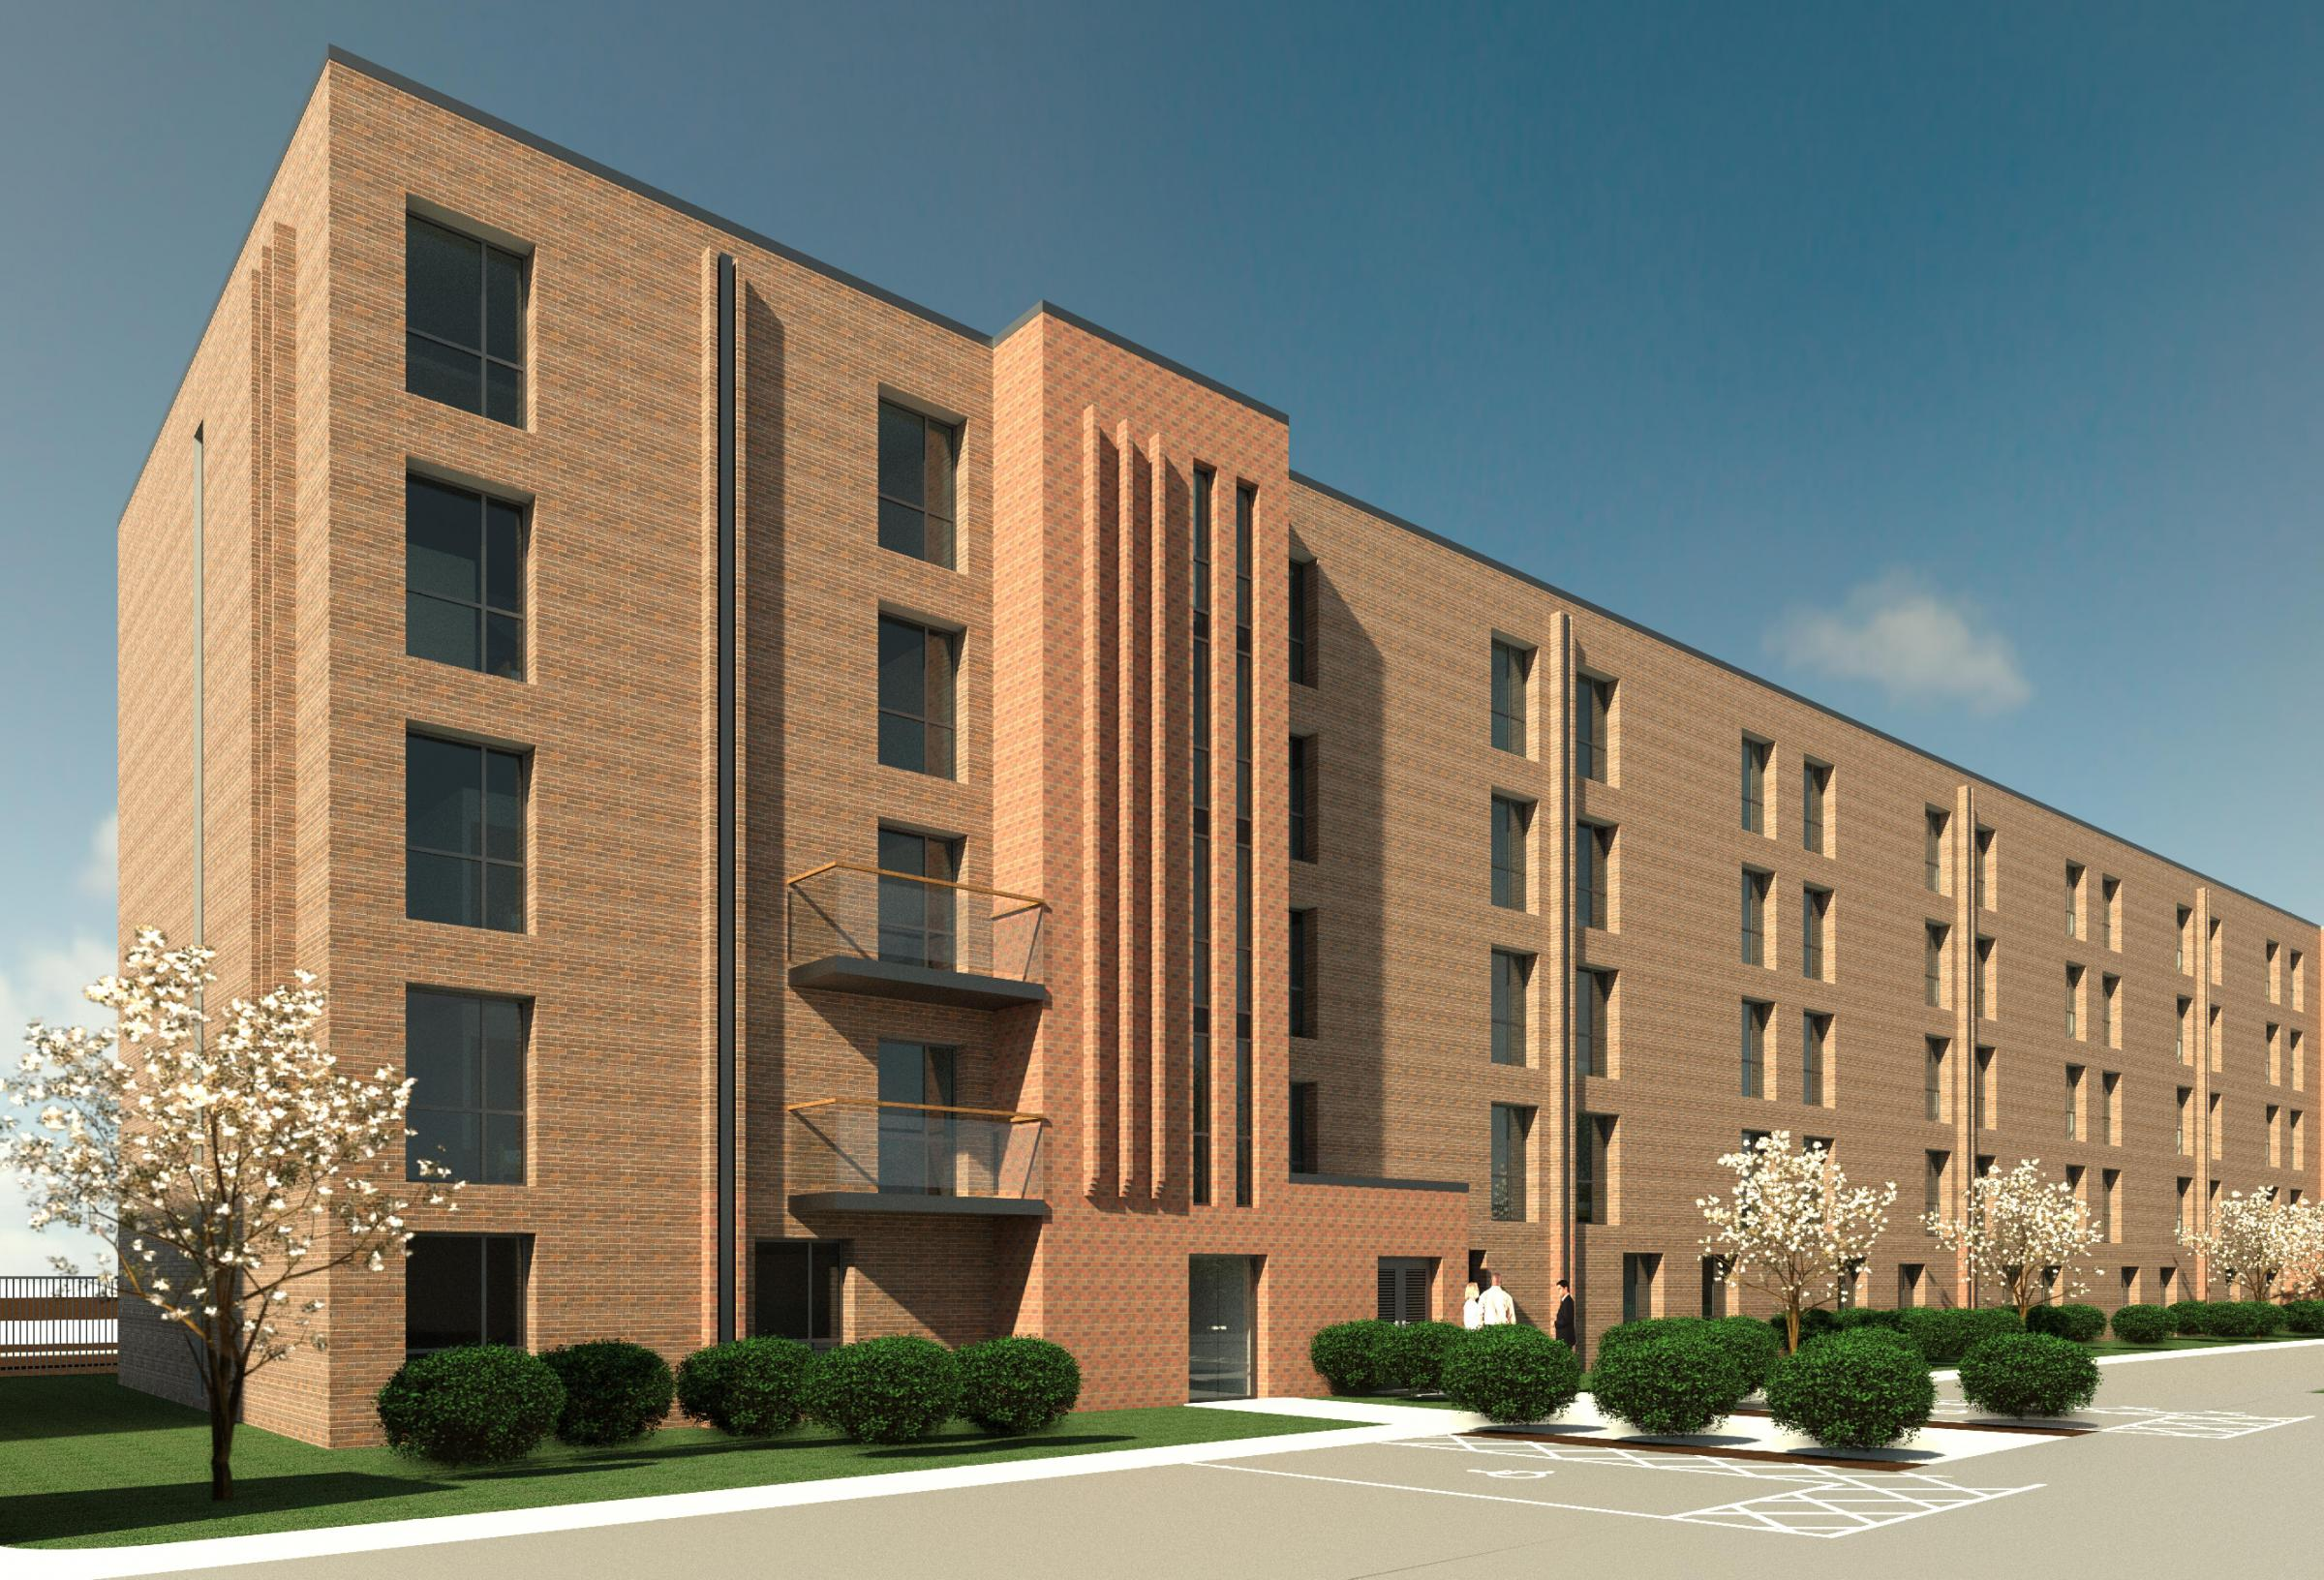 How the 189-apartment development on Station Road in Latchford could look.